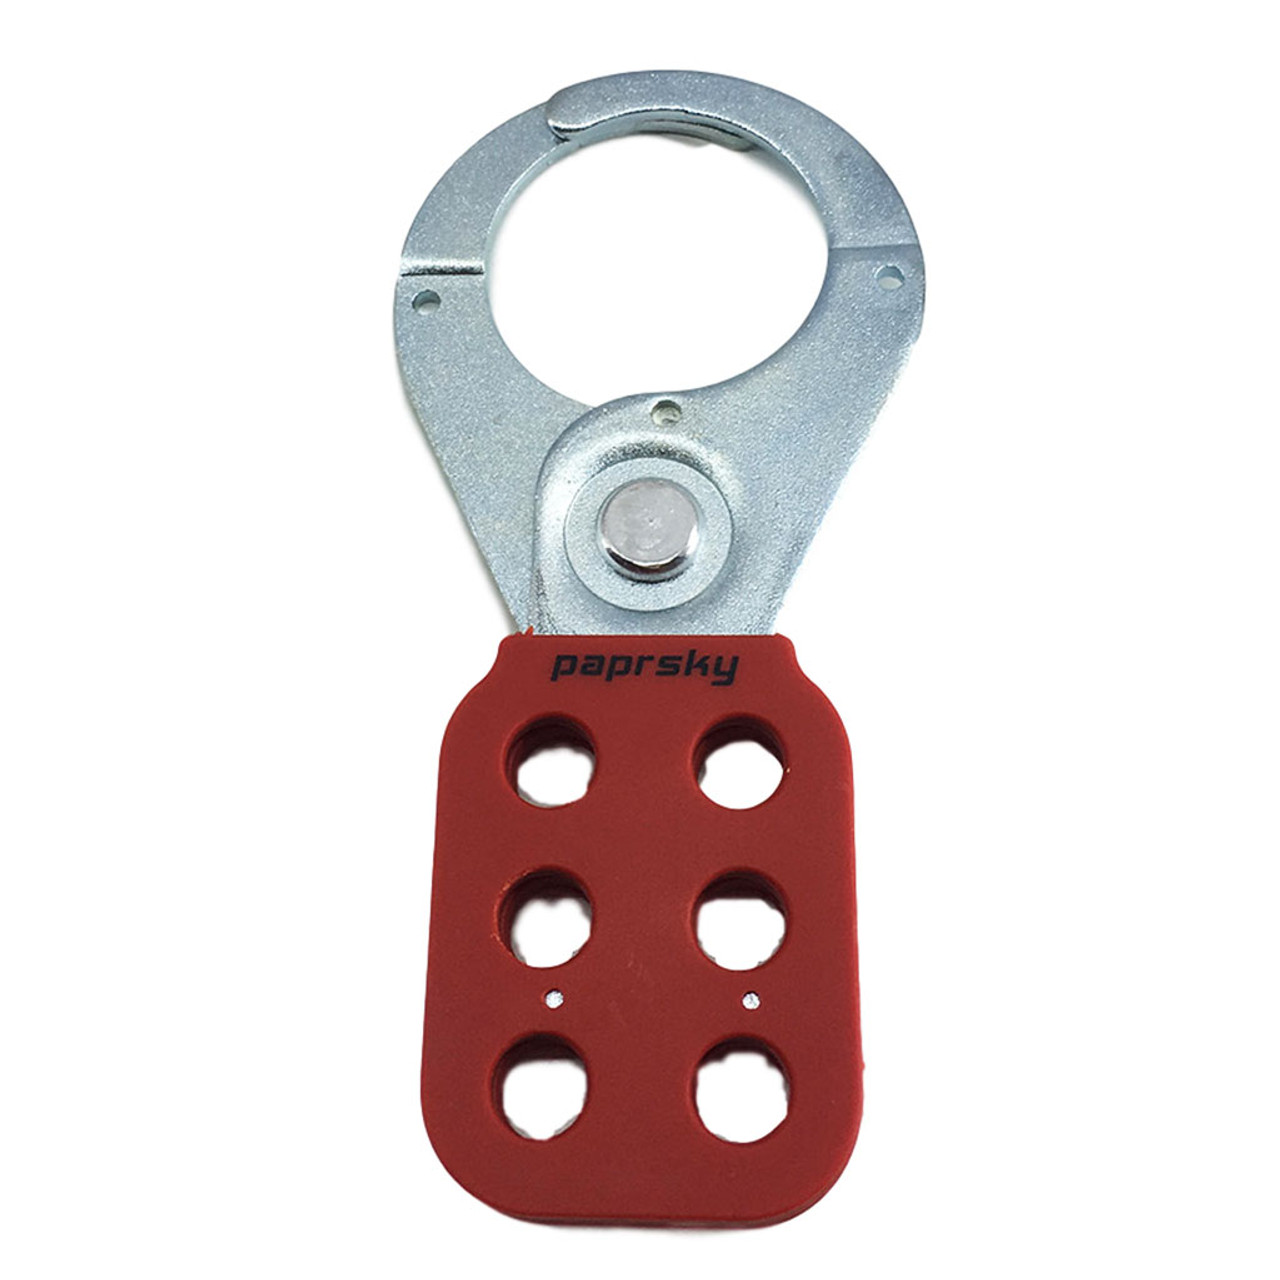 Stainless Steel Vinyl Coated Hasp - 38mm PS-LOTO-HASP-CP